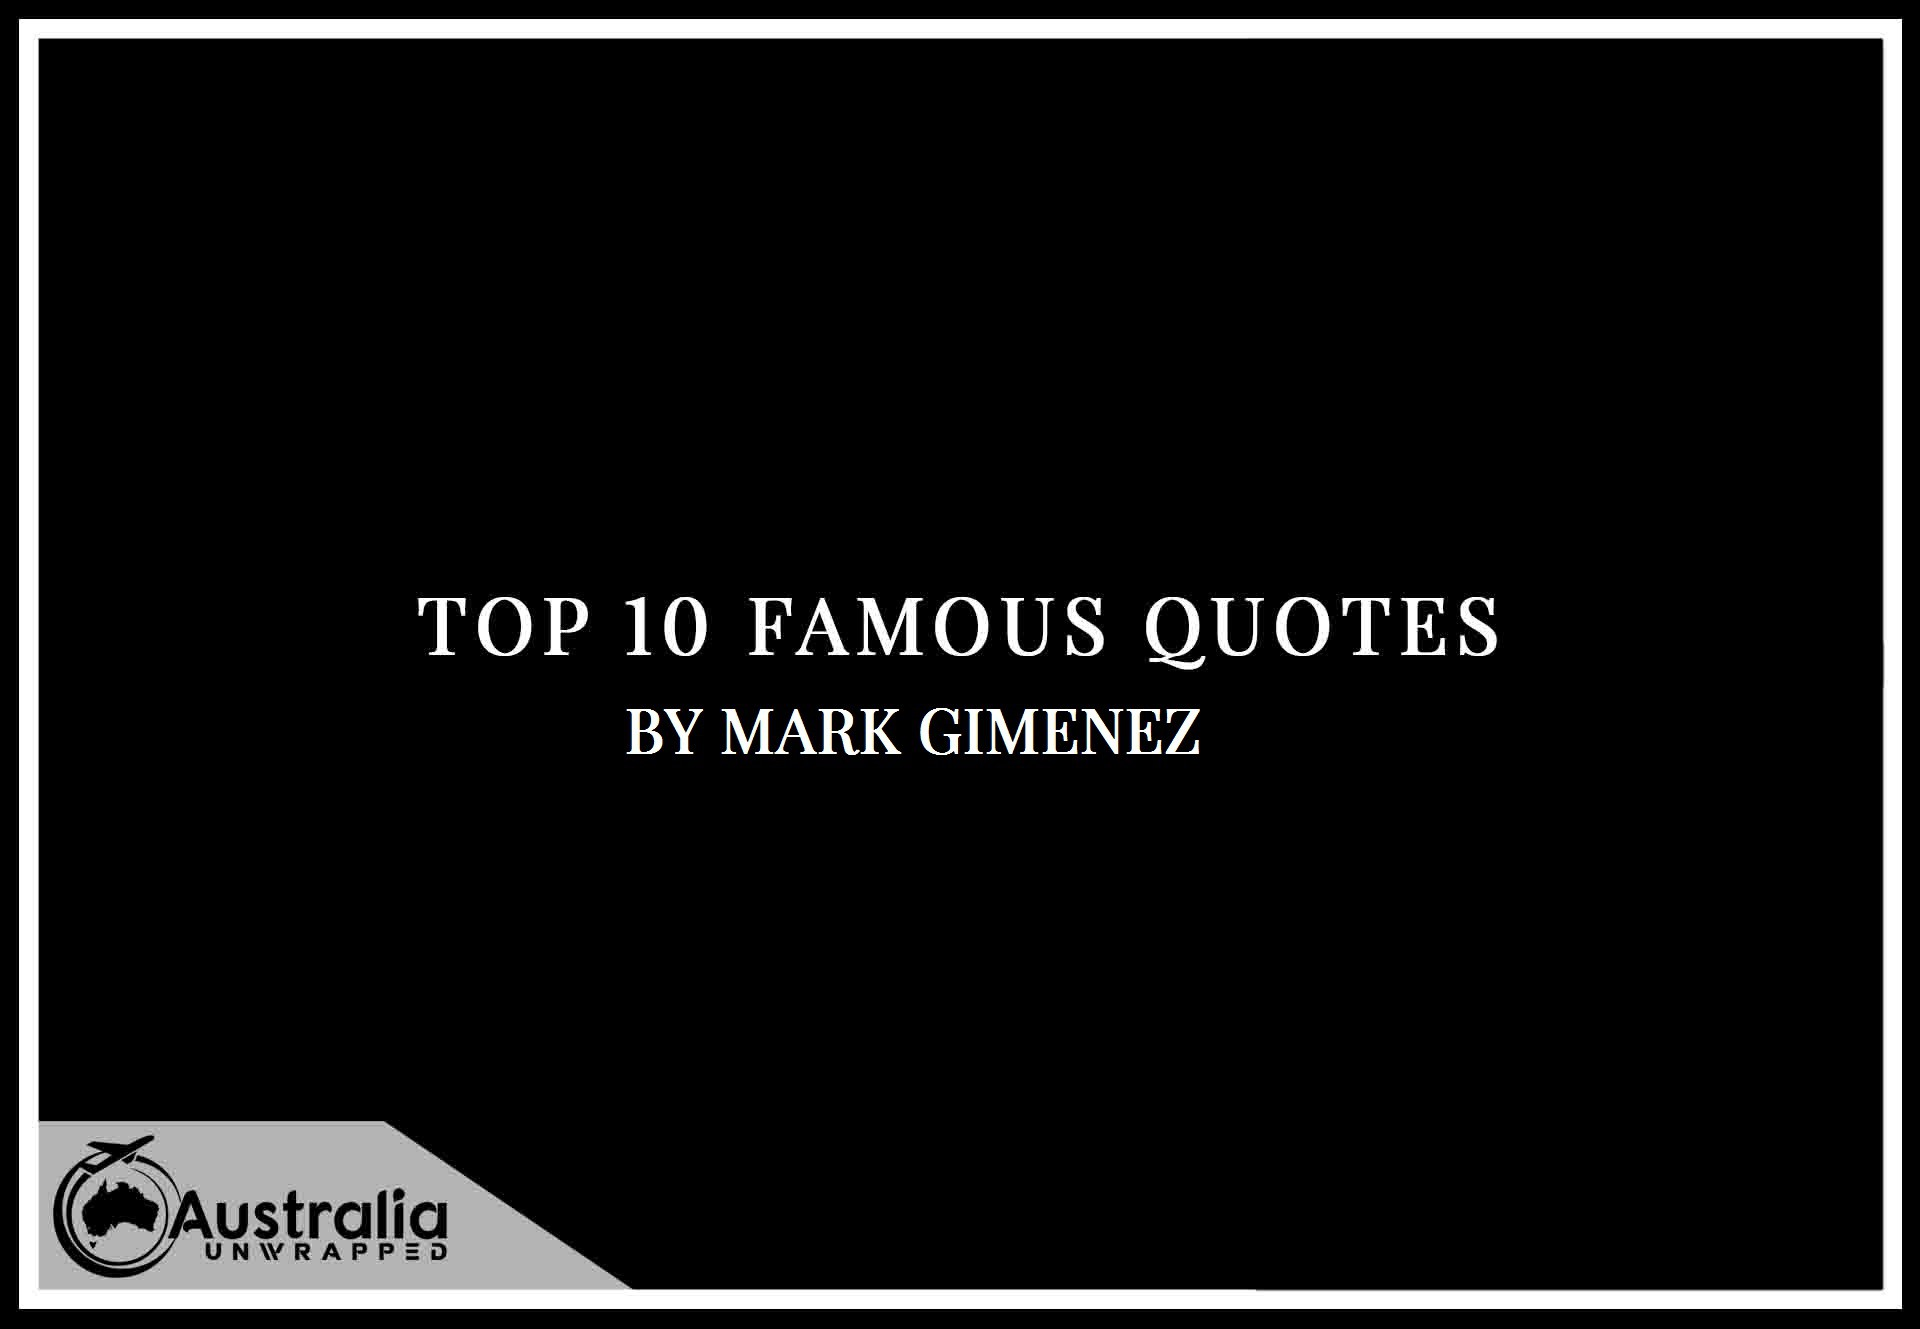 Mark Gimenez's Top 10 Popular and Famous Quotes